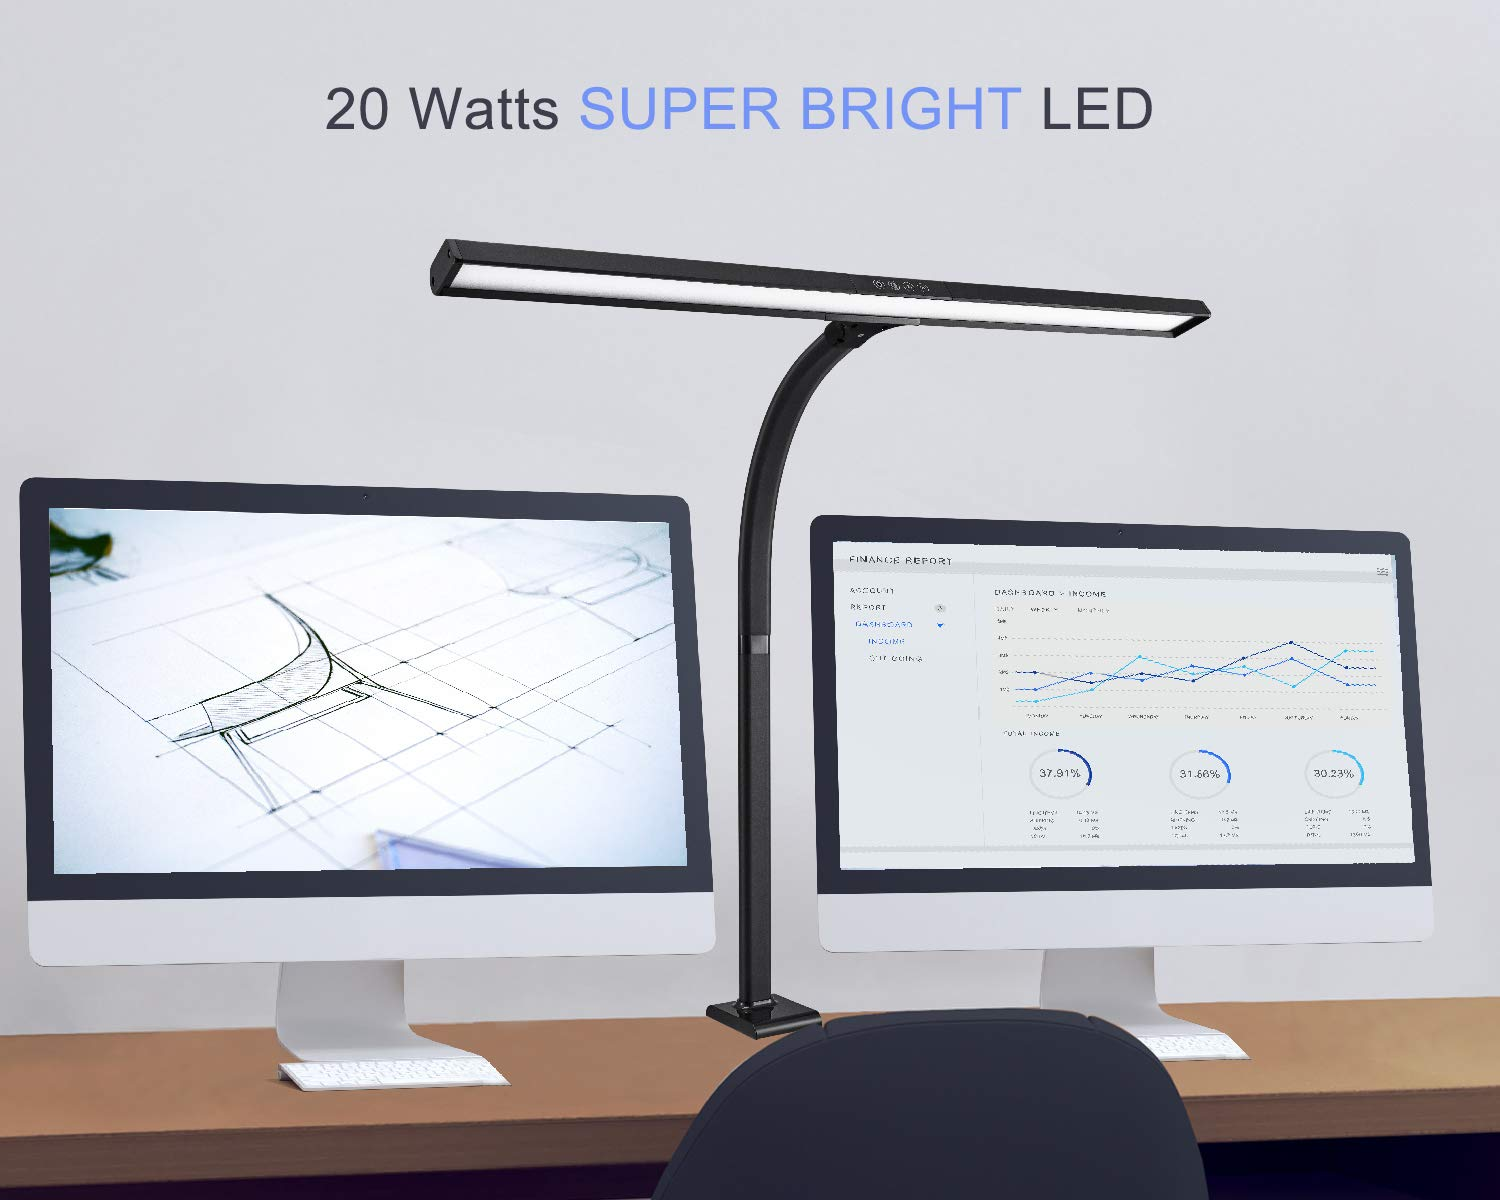 PHIVE LED Desk Lamp, Architect Clamp Task Table Lamp, 20W Super Bright Extra Wide Area Drafting Work Light, 4 Color Modes, 5 Brightness Levels – Great for Workbench, Office, Studio, Reading, Monitor